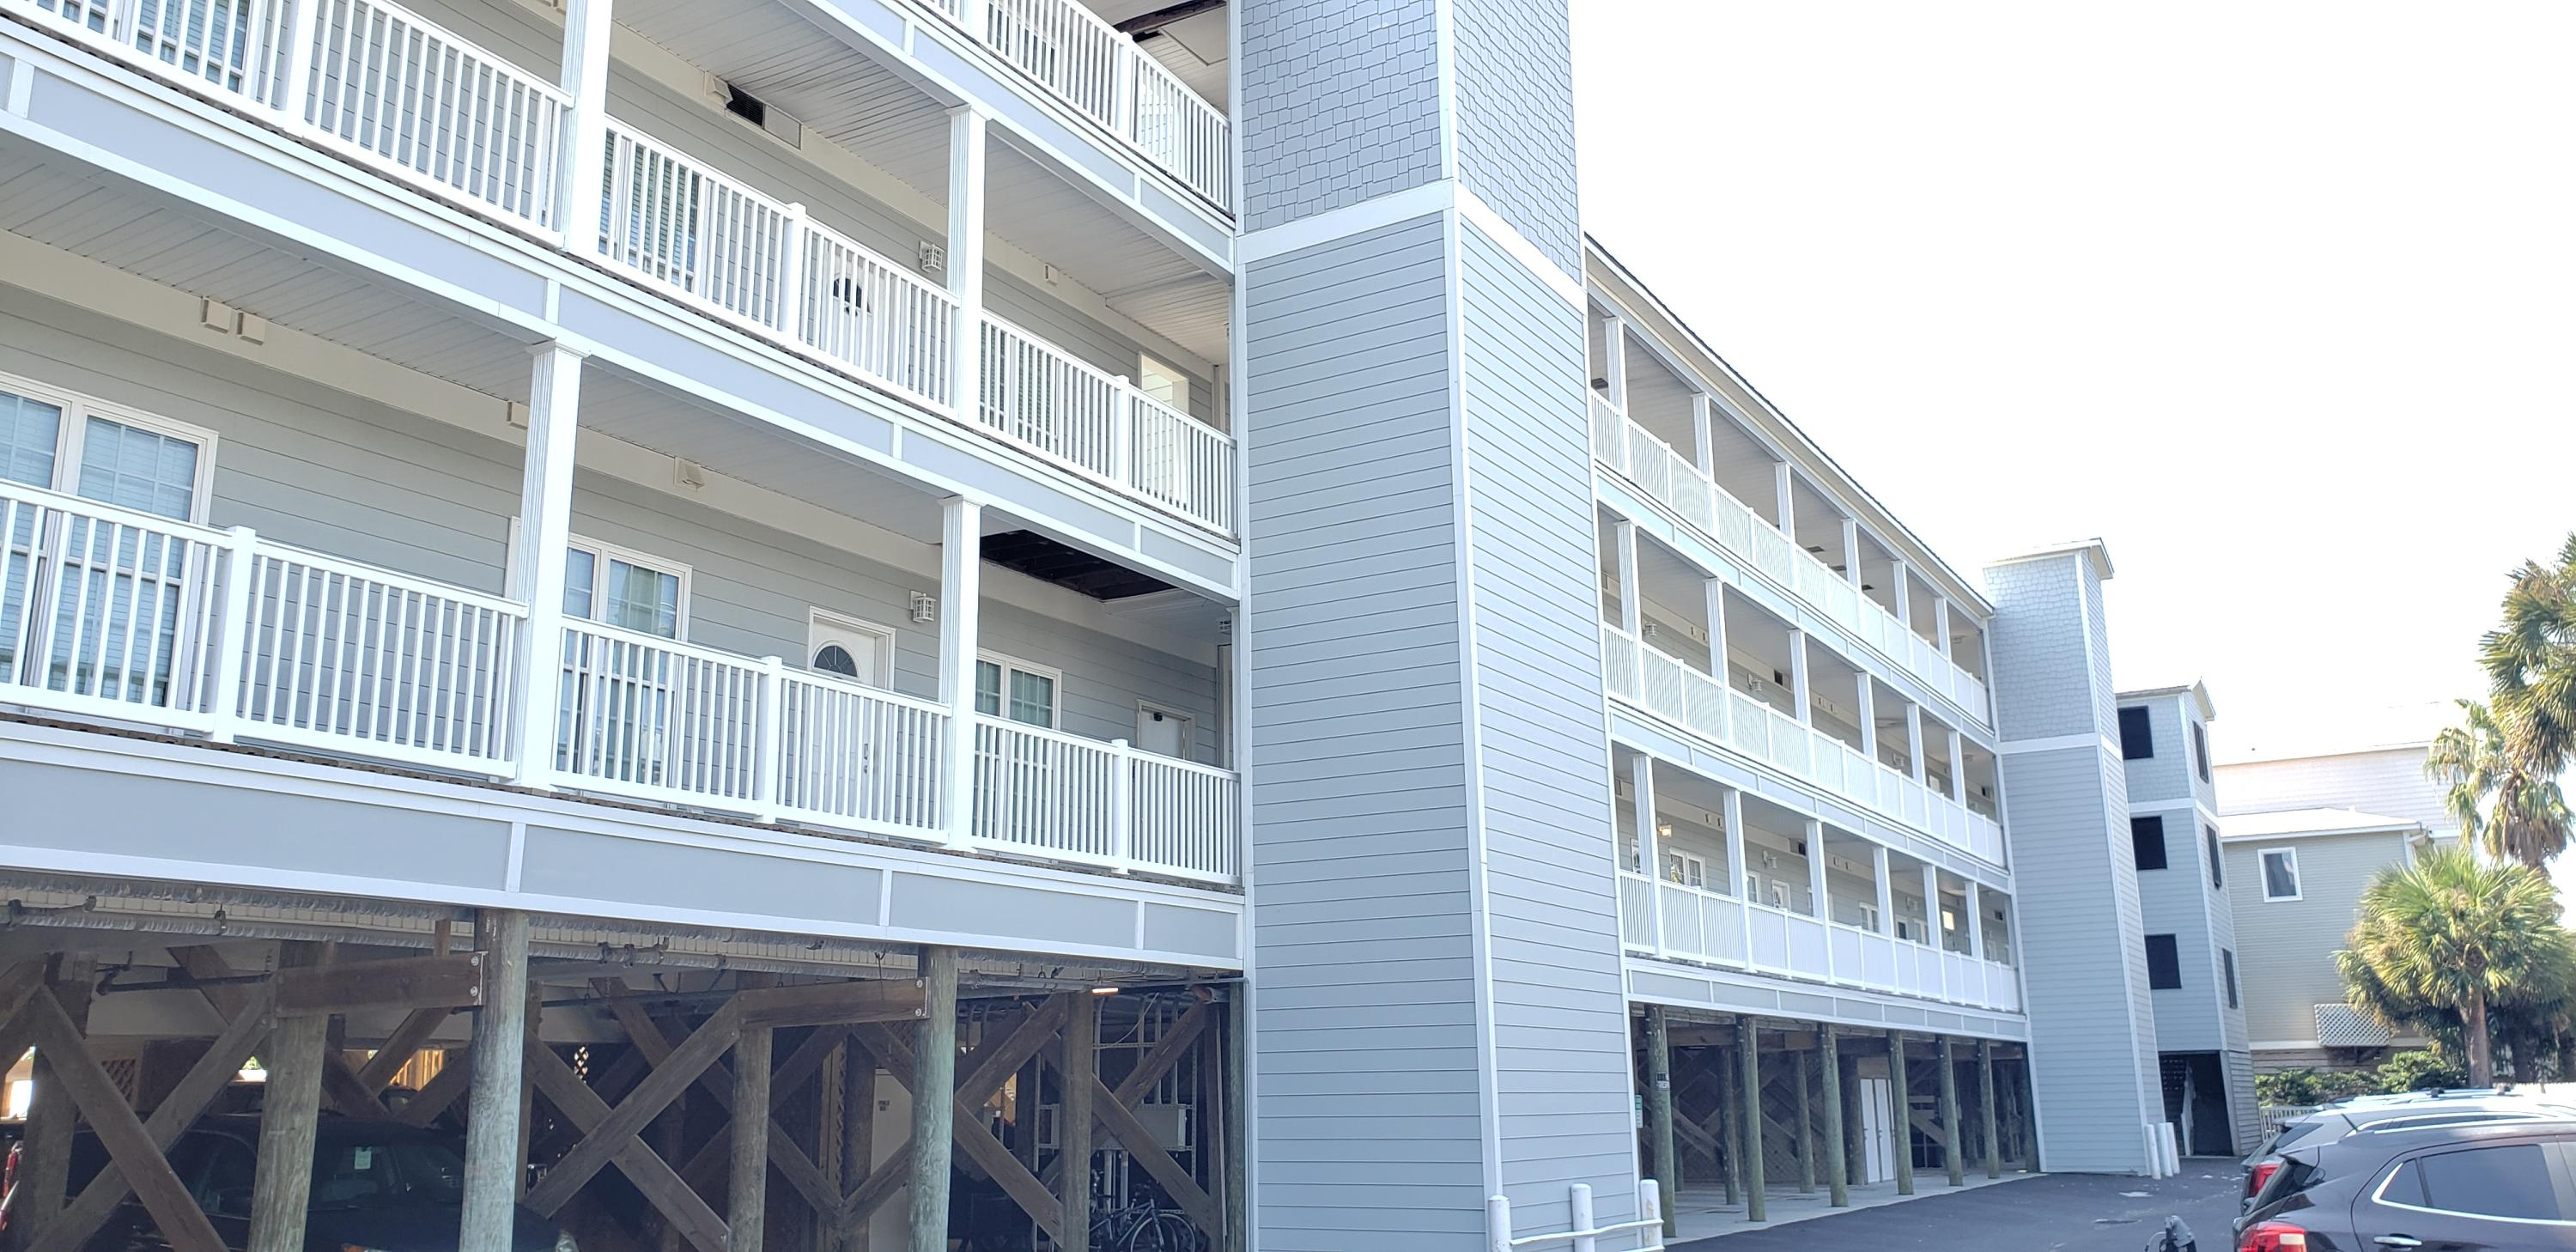 Pavilion Watch Homes For Sale - 106 Arctic, Folly Beach, SC - 2